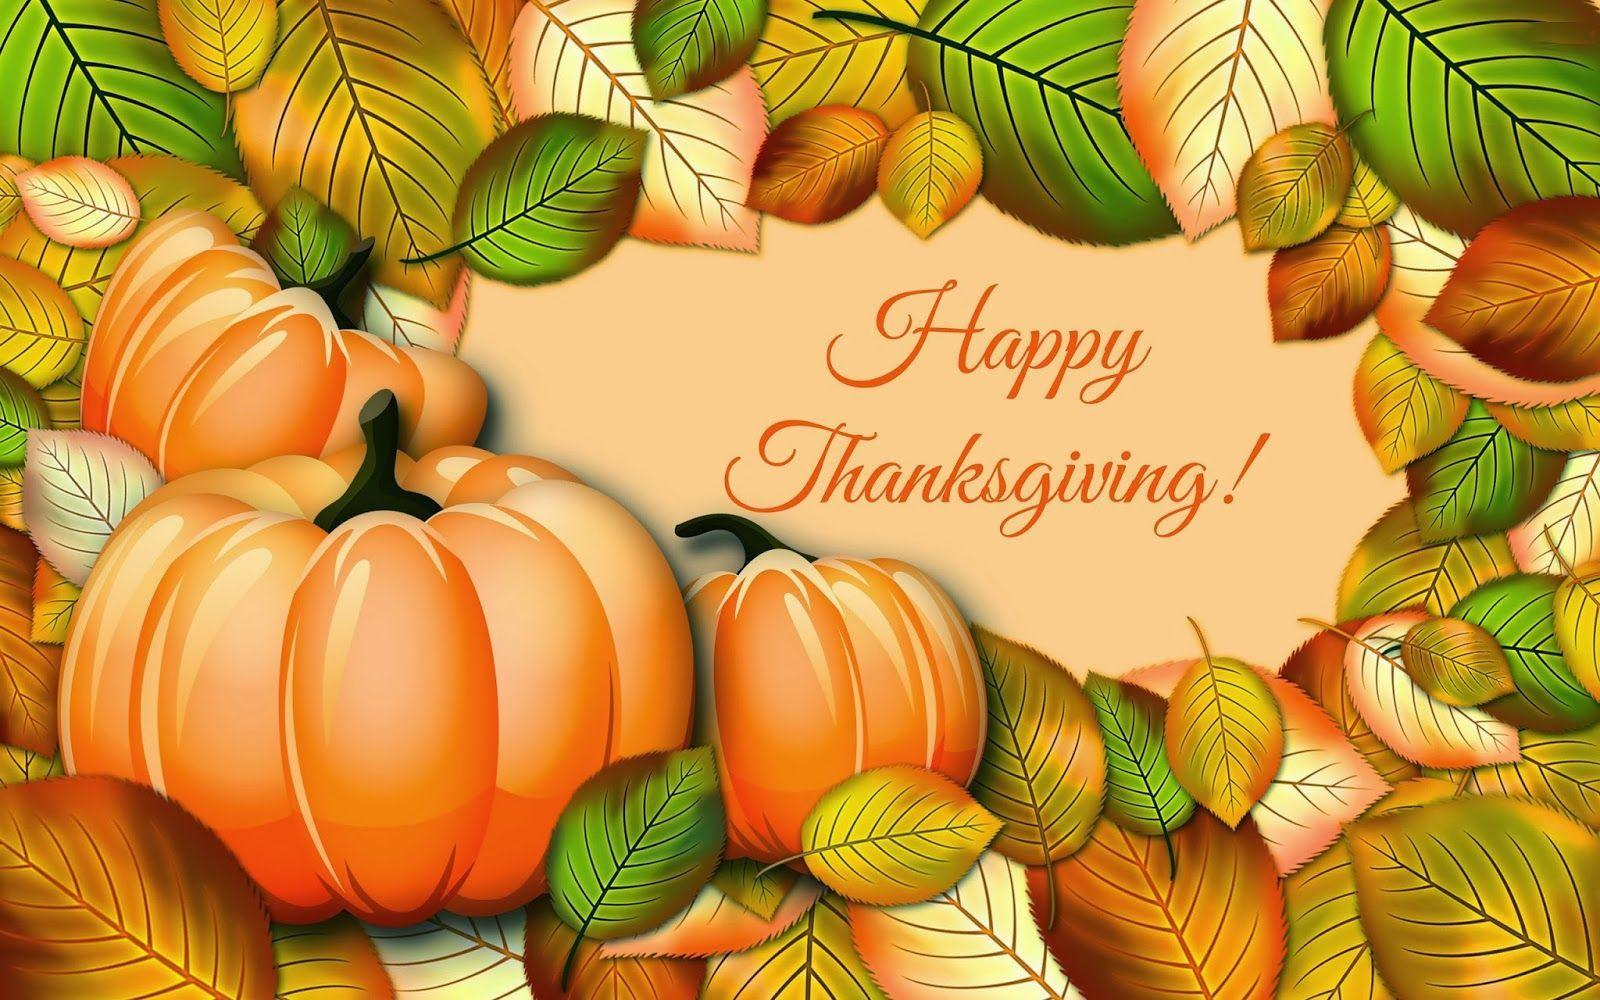 Happy Thanksgiving Day HD Wallpapers | HD Wallpapers | Pinterest ...